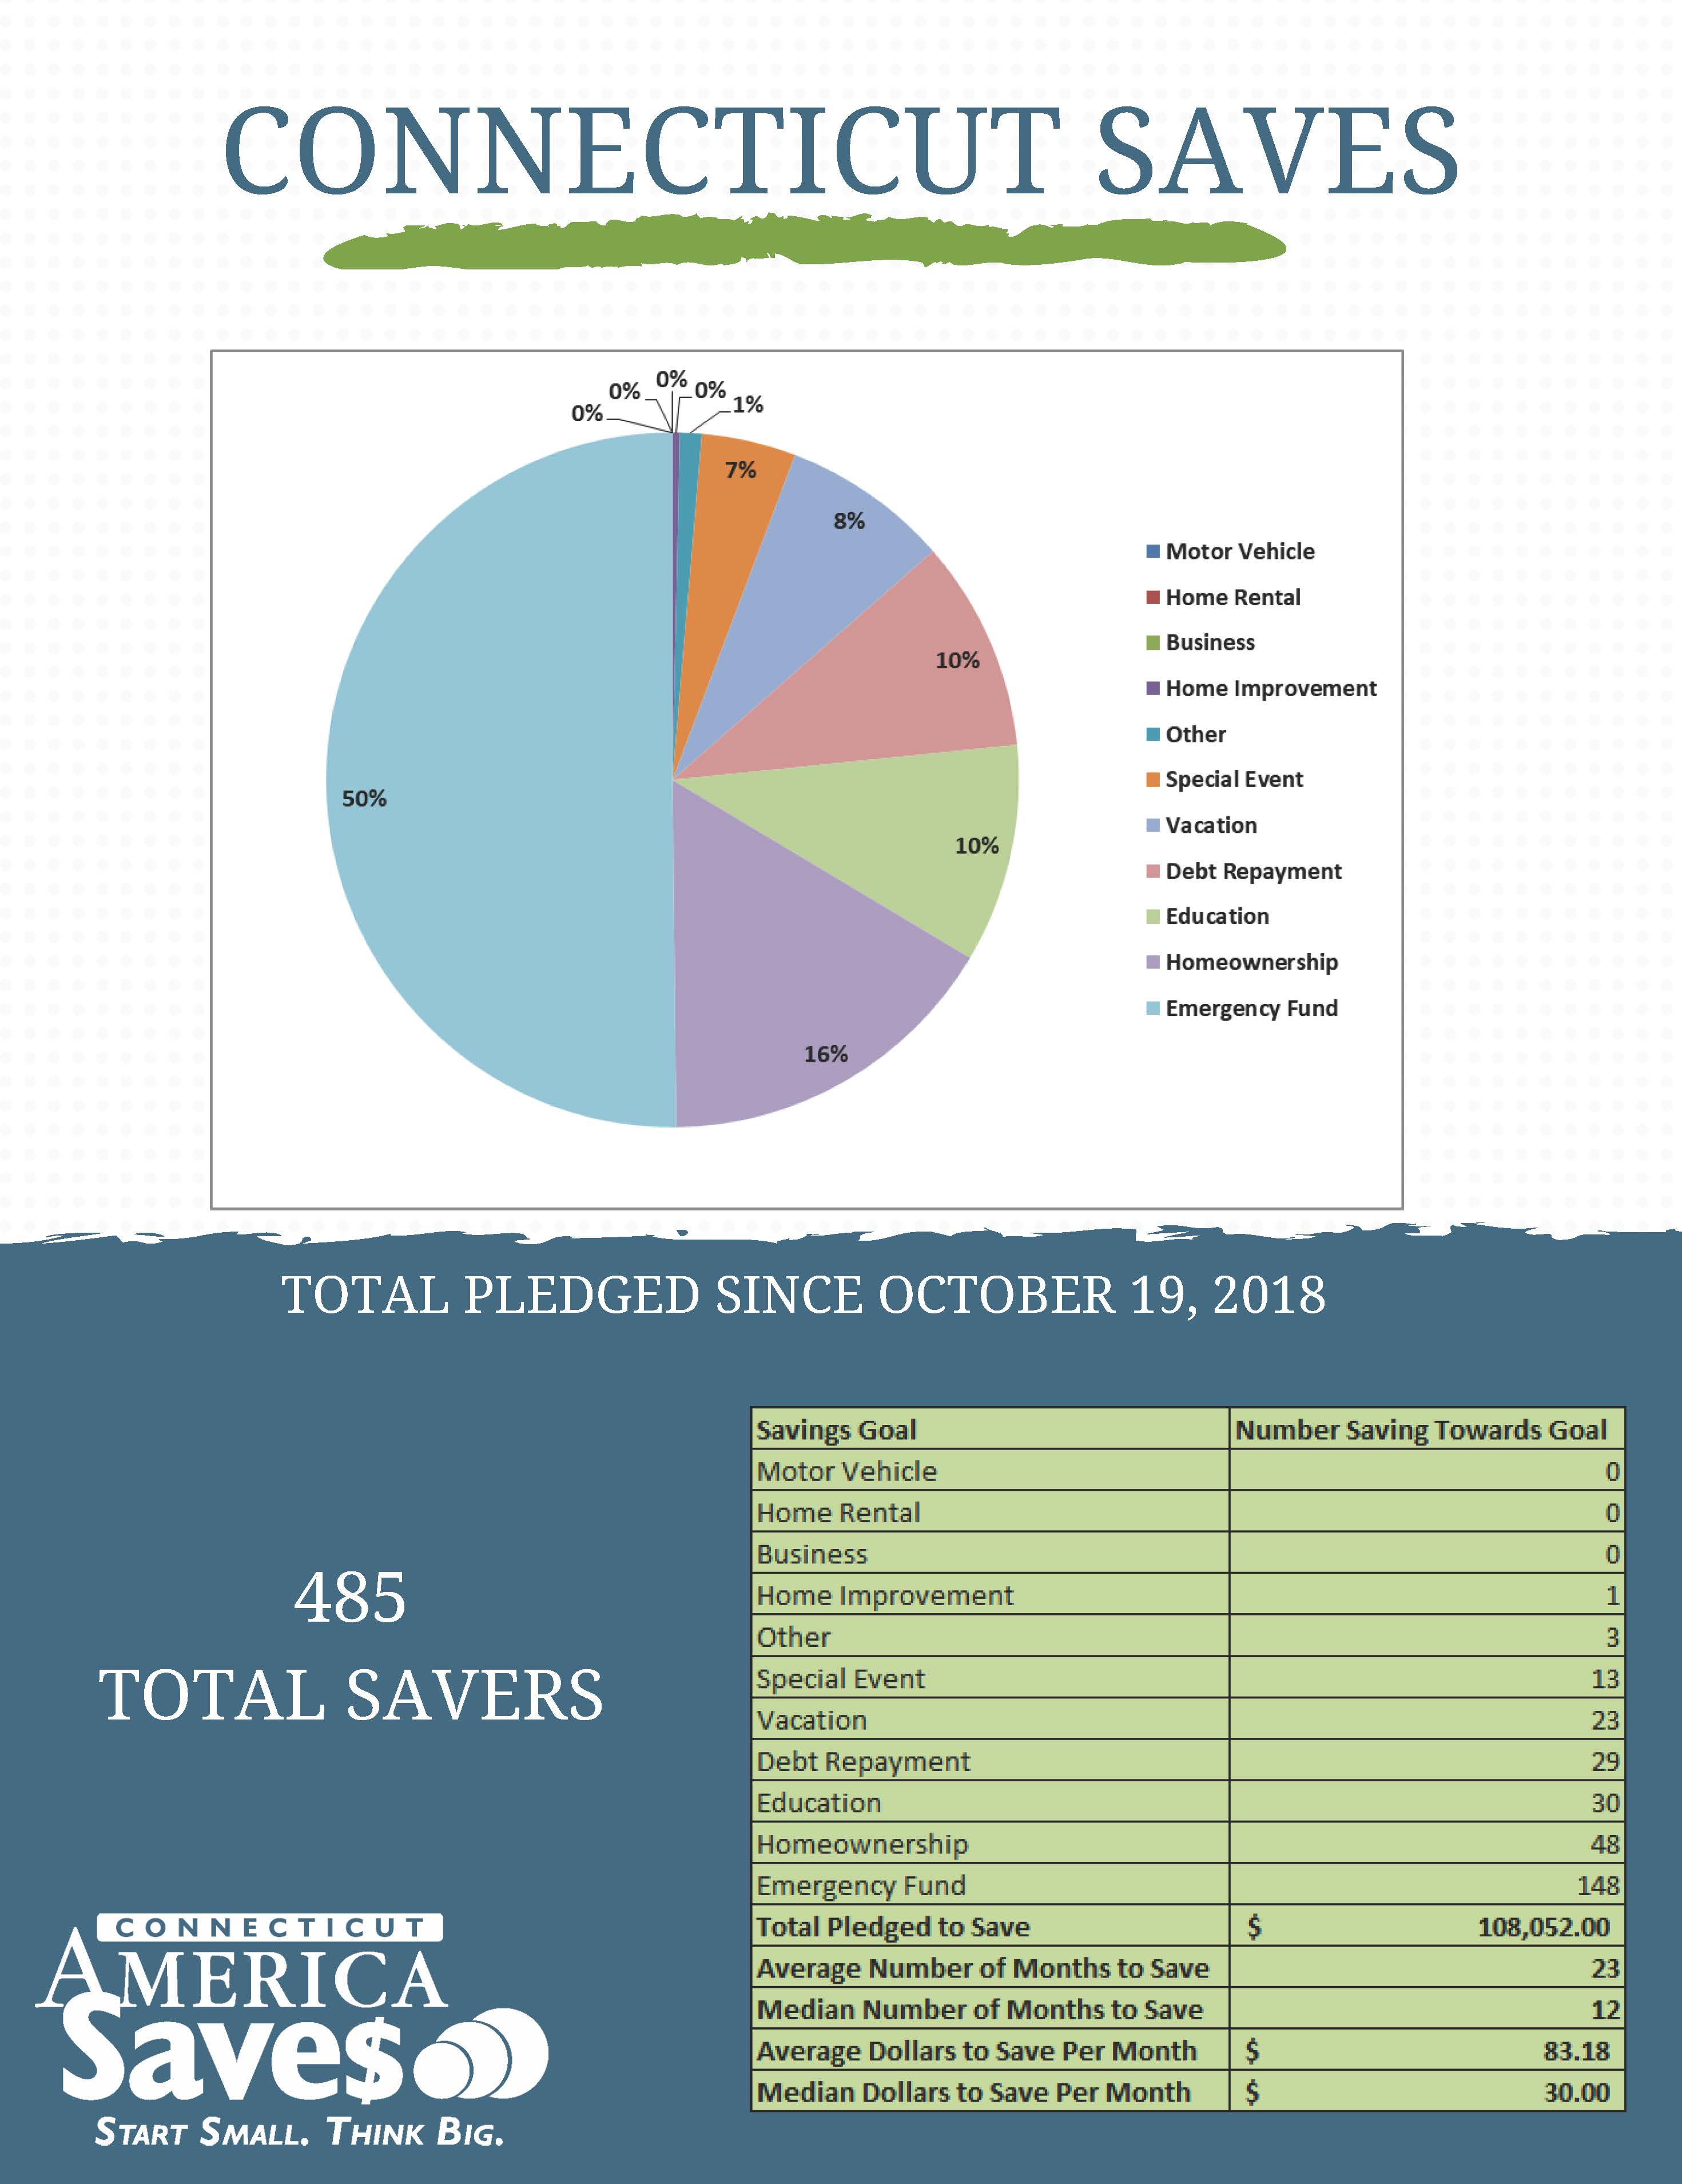 infographic of goals for CT Saves pledges